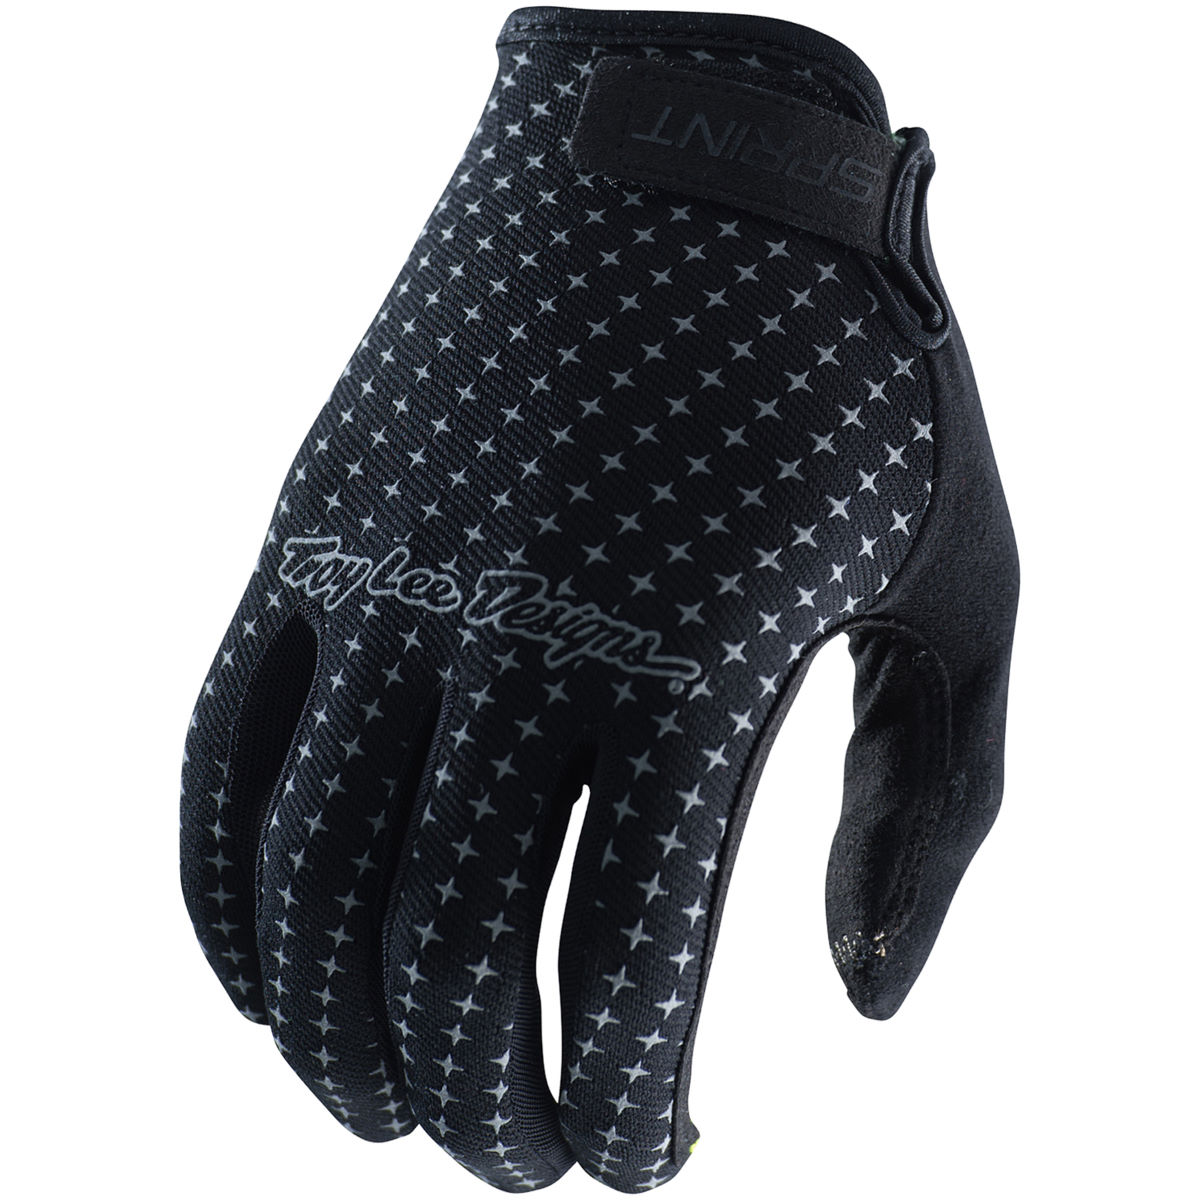 Gants Troy Lee Designs Sprint - XXL Noir Gants